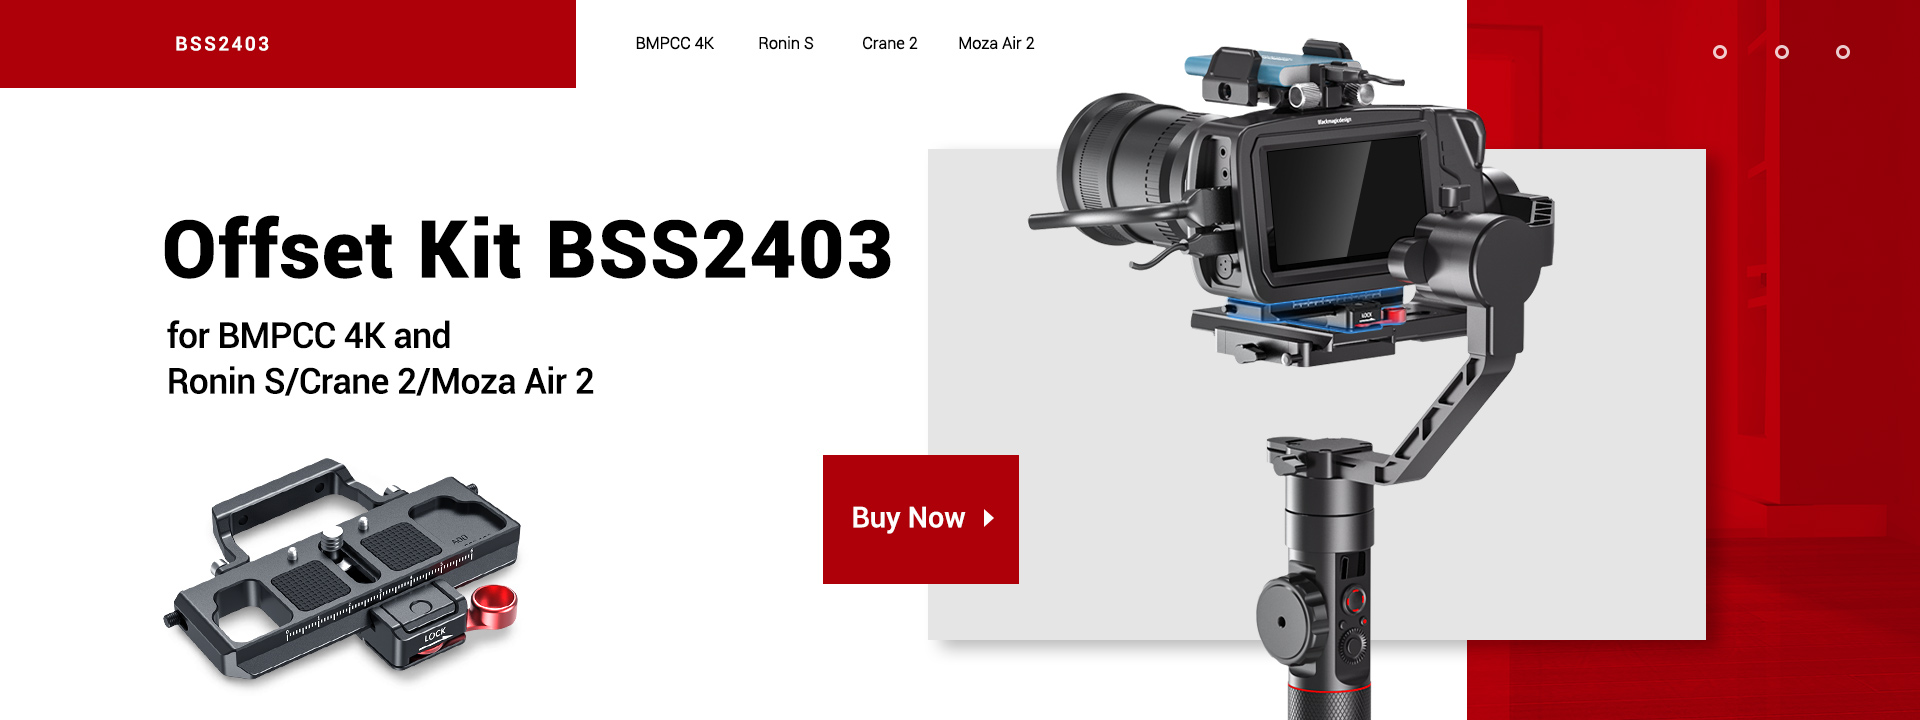 SMALLRIG OFFSET KIT FOR BMPCC 4K AND RONIN S CRANE 2 MOZA AIR 2 BSS2403